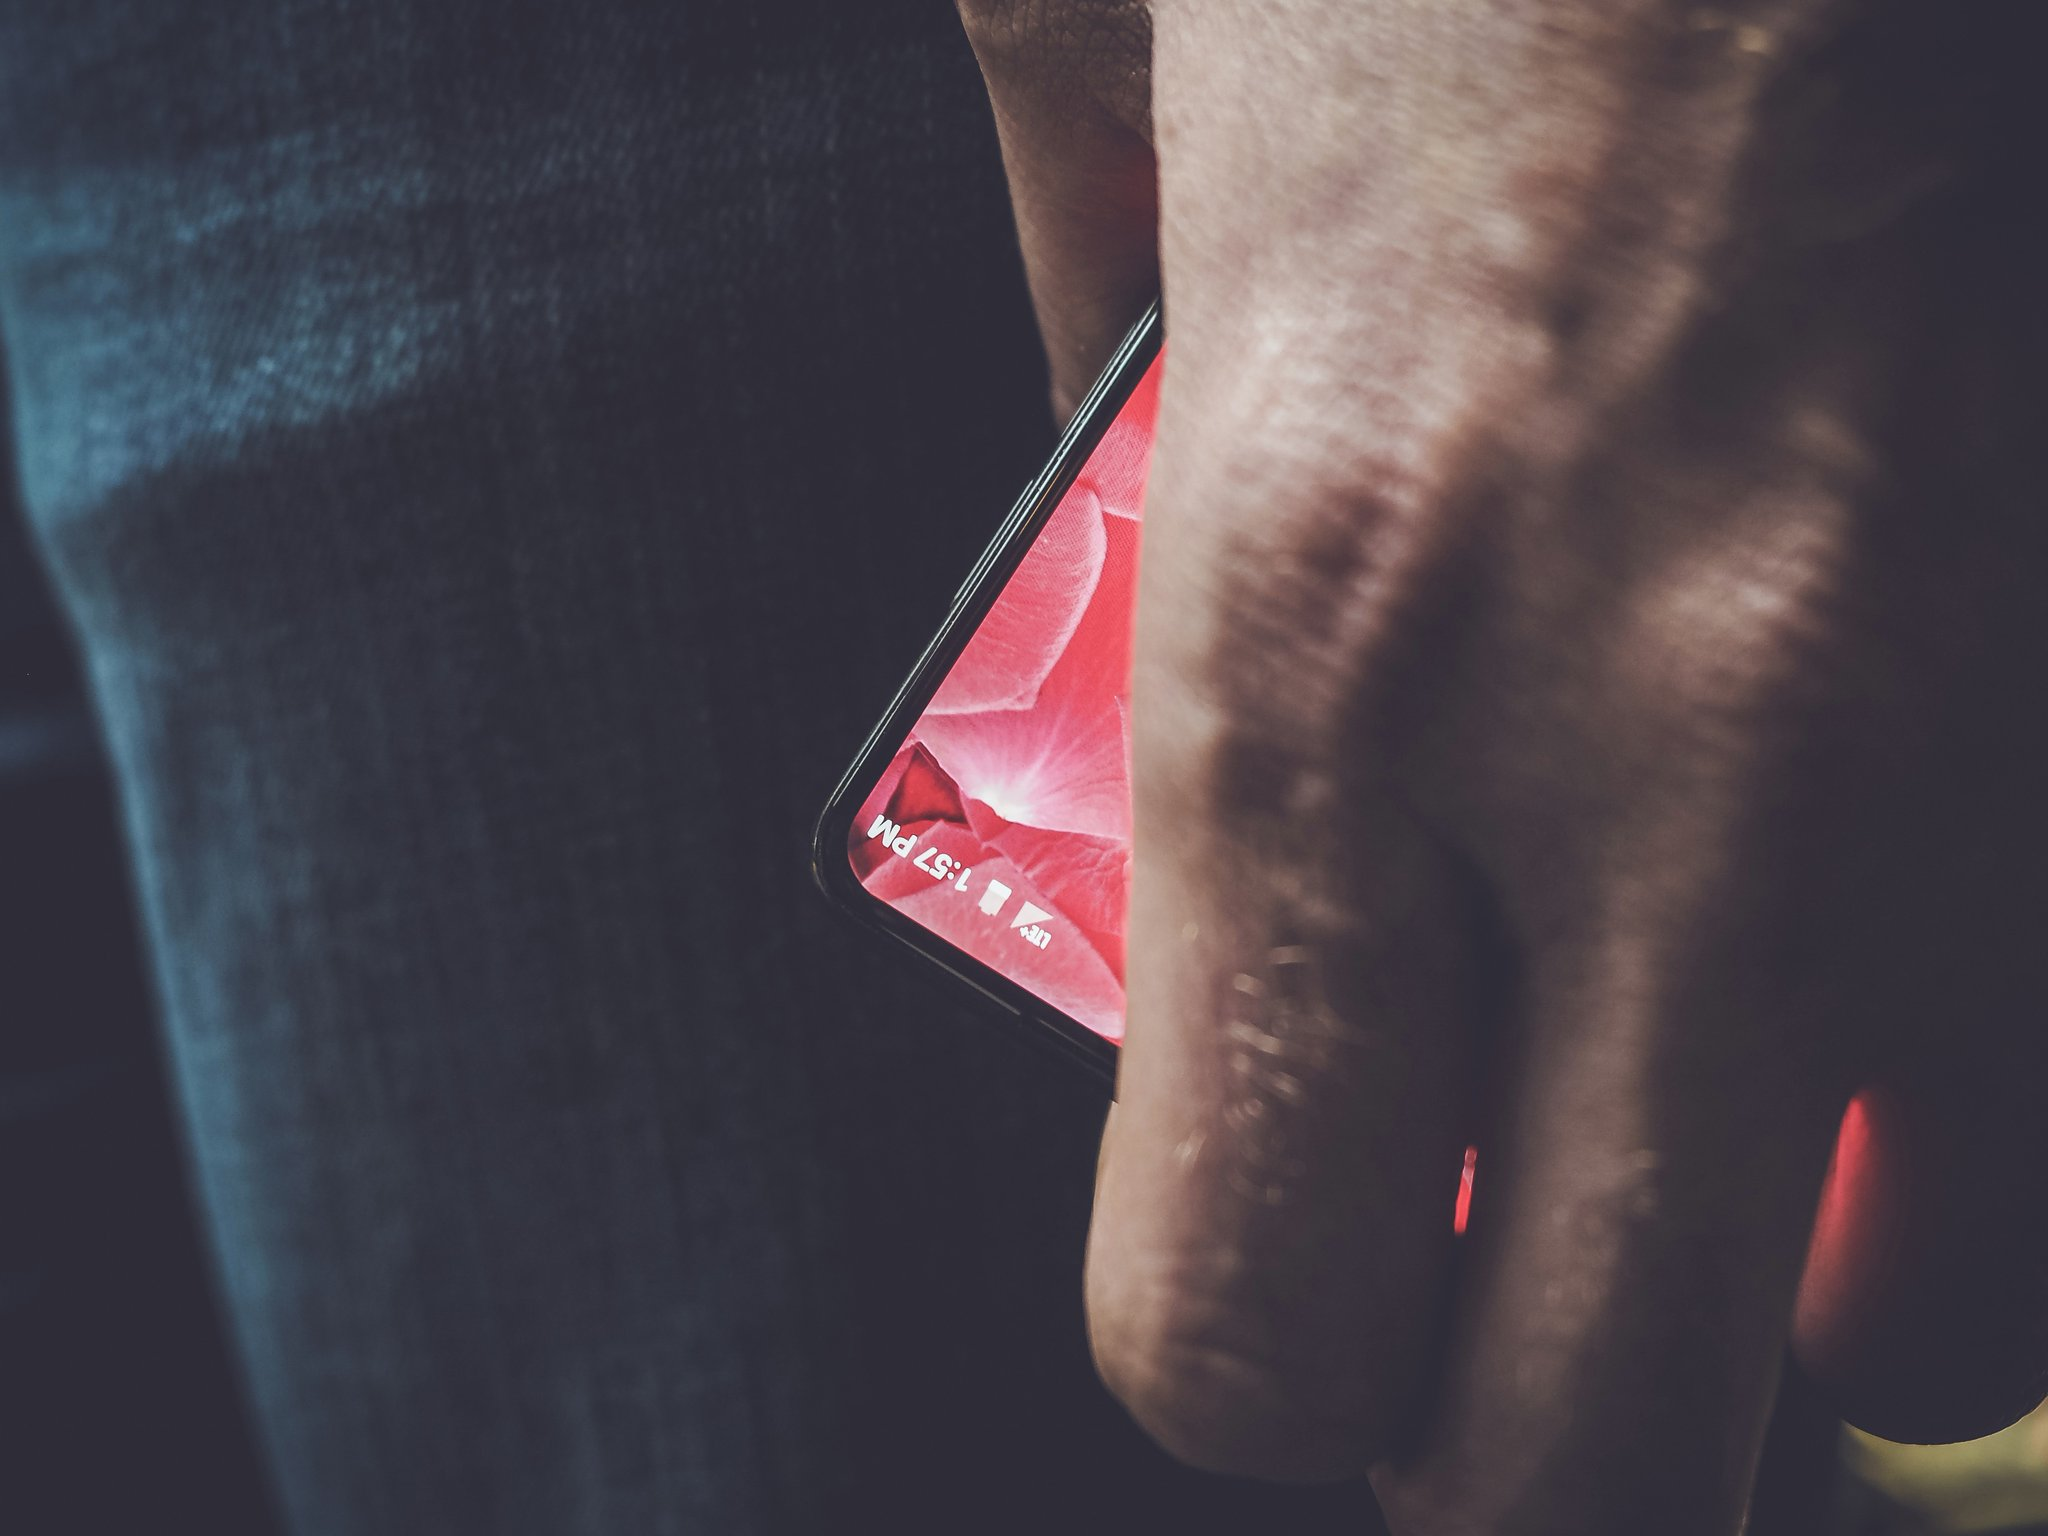 Benchmark Reveals Specs For Andy Rubin's Essential Android Smartphone